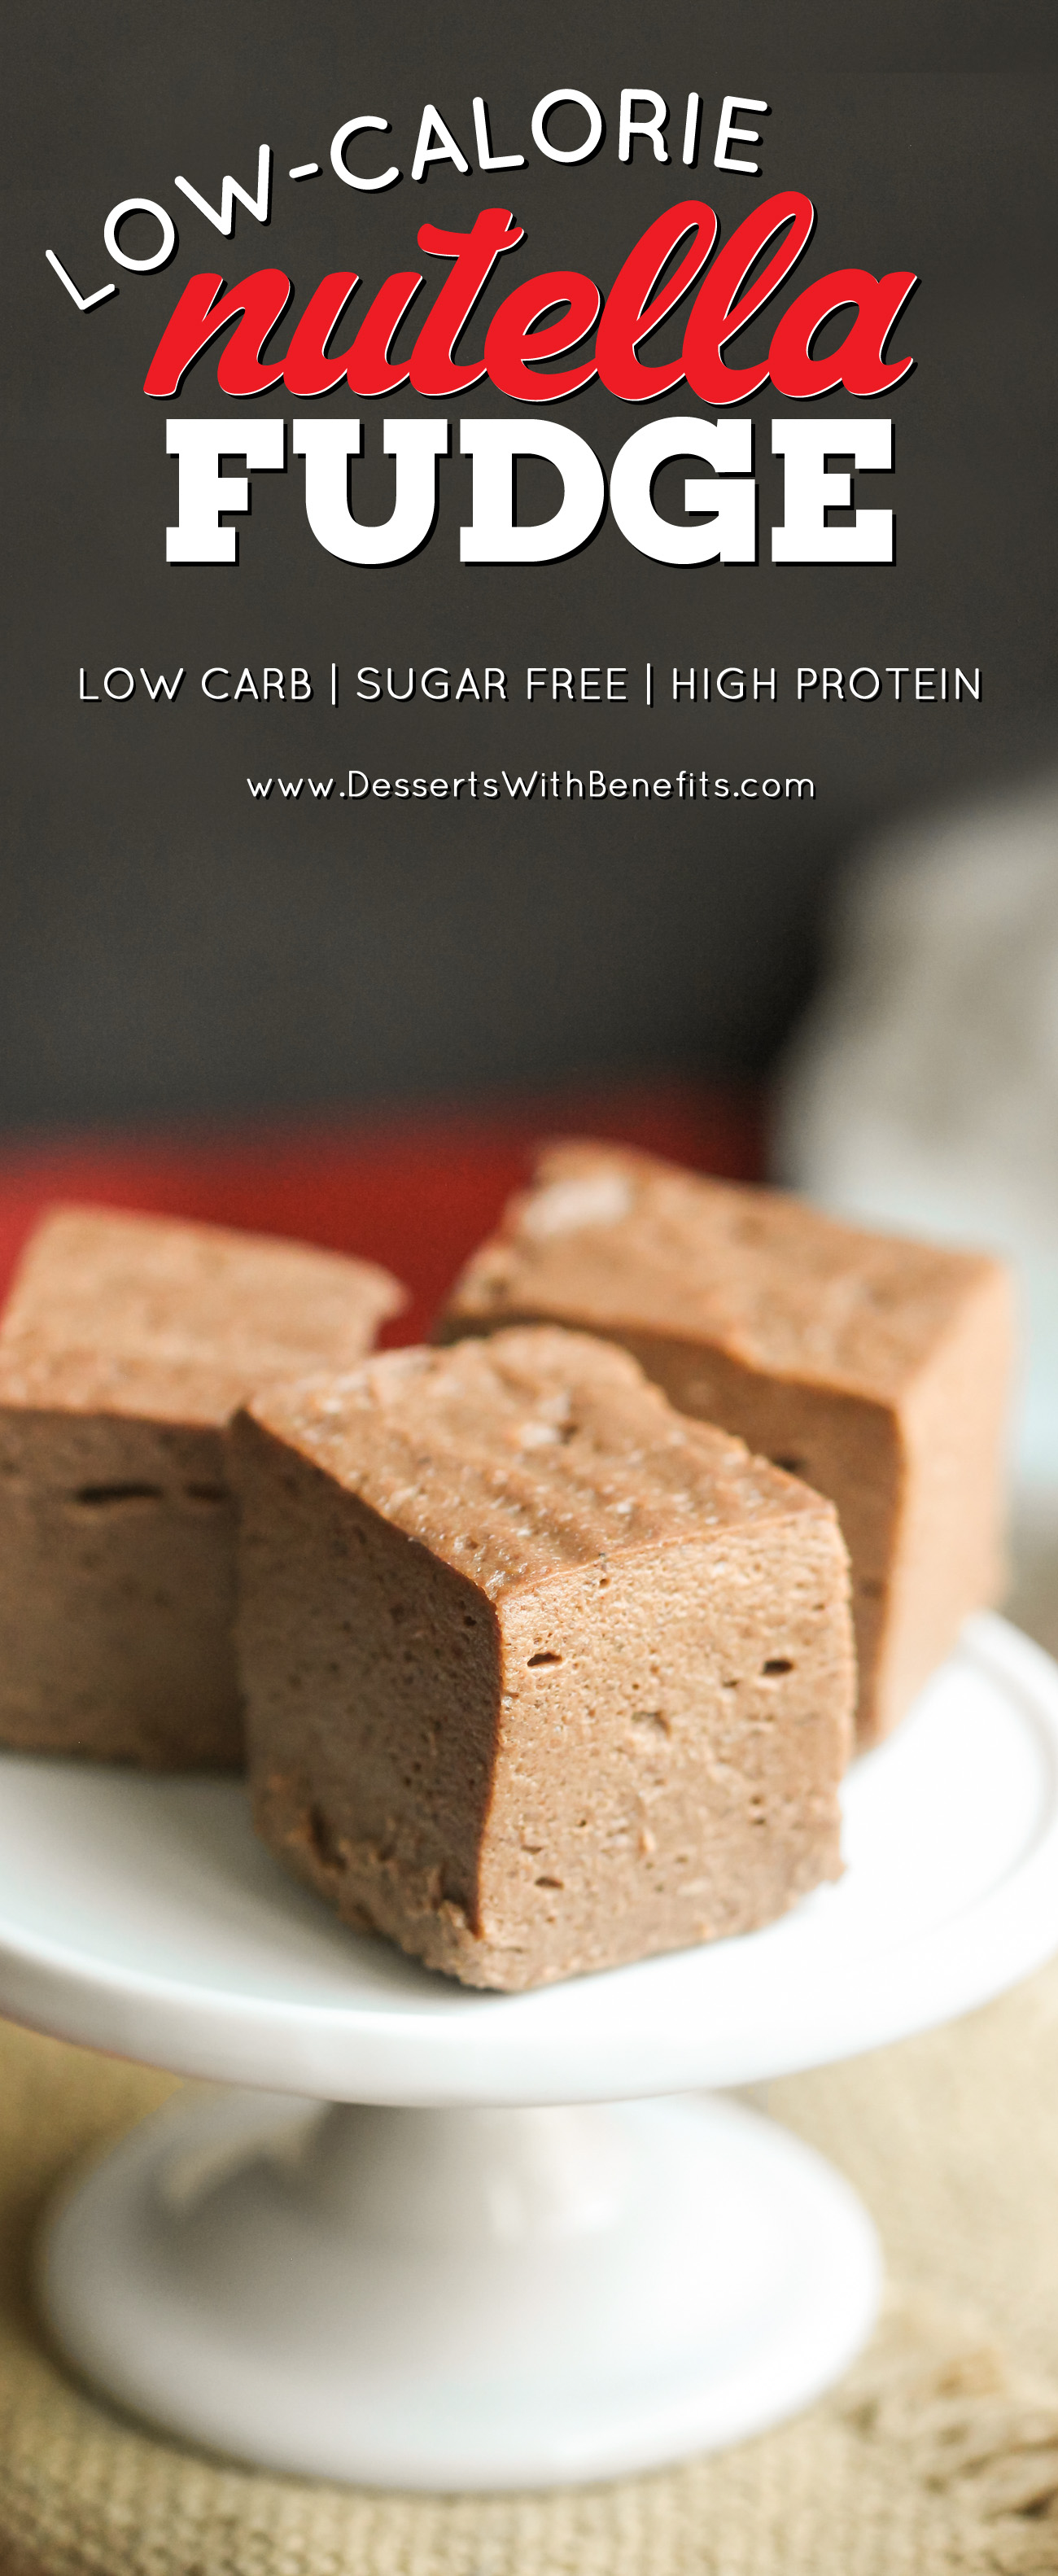 This Healthy Nutella Fudge is sweet, chocolatey, fluffy, and delicious. Oh, and it's made with two secret ingredients! Can you guess what they are? This addicting fudge is packed full of protein, fiber, and healthy fats, and none of the added sugar or artificial ingredients. It sure doesn't taste low calorie, sugar free, low carb, high protein, high fiber, and gluten free! -- Healthy Dessert Recipes at the Desserts With Benefits Blog (www.DessertsWithBenefits.com)